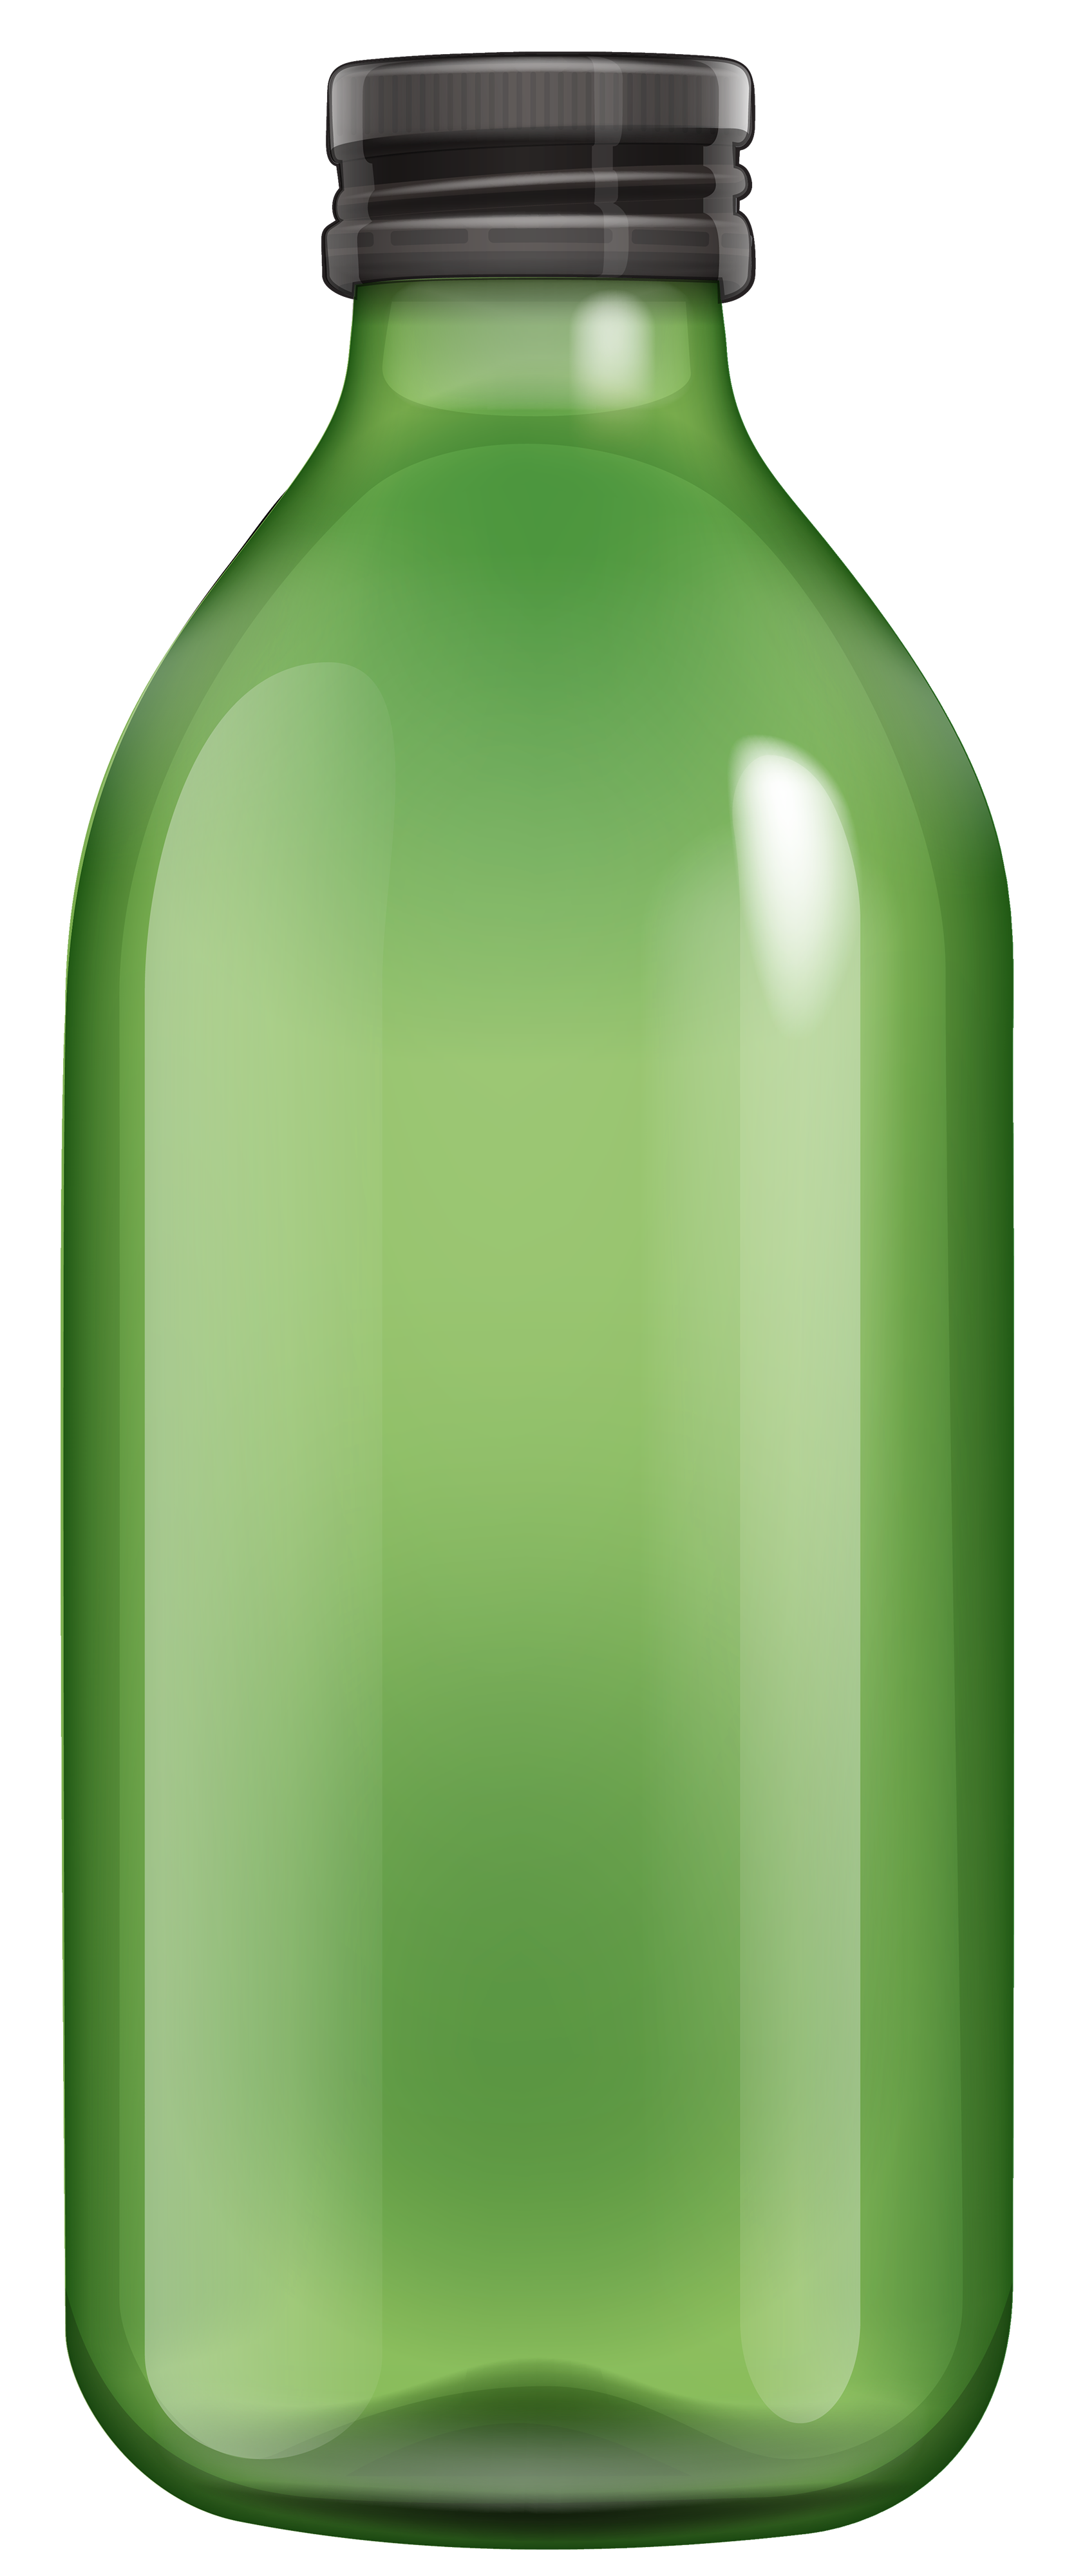 bottle clipart green bottle